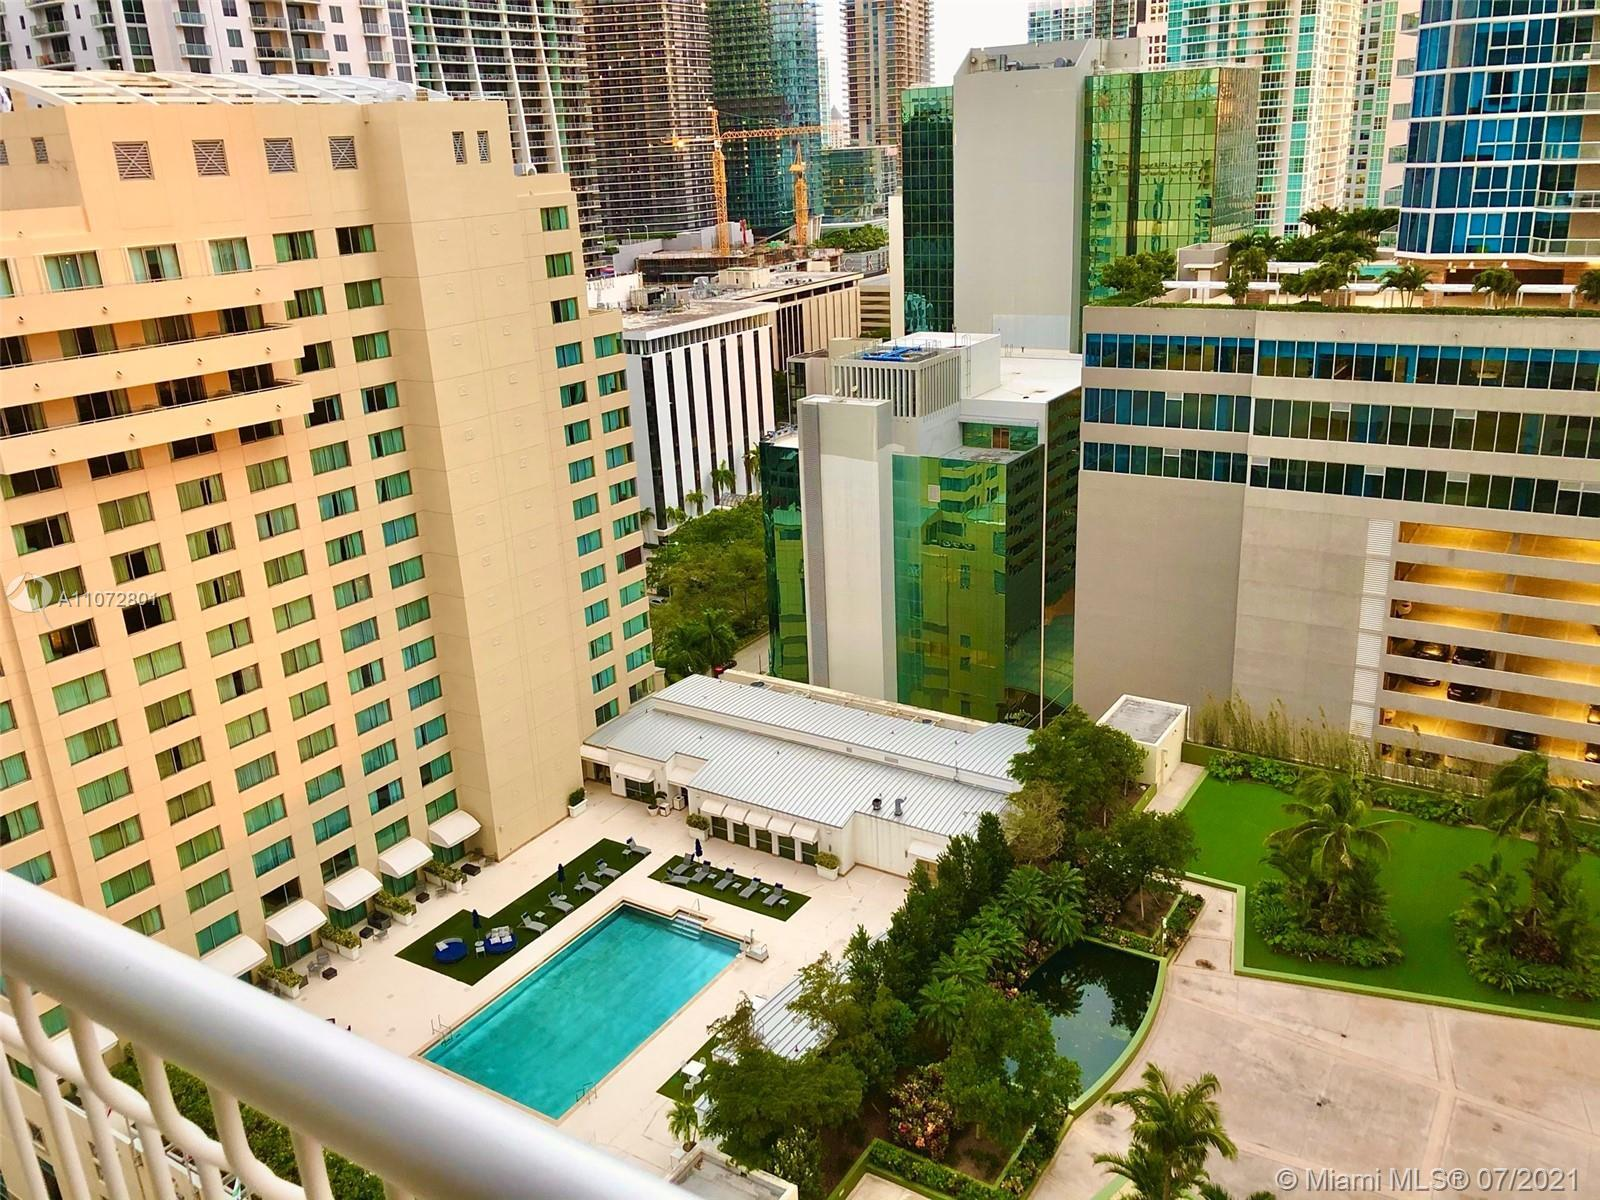 APPROVED SHORT TERM RENTALS. SPACIOUS UNIT IN THE HEART OF BRICKELL BY THE BAY. HIGH FLOOR WITH OPEN